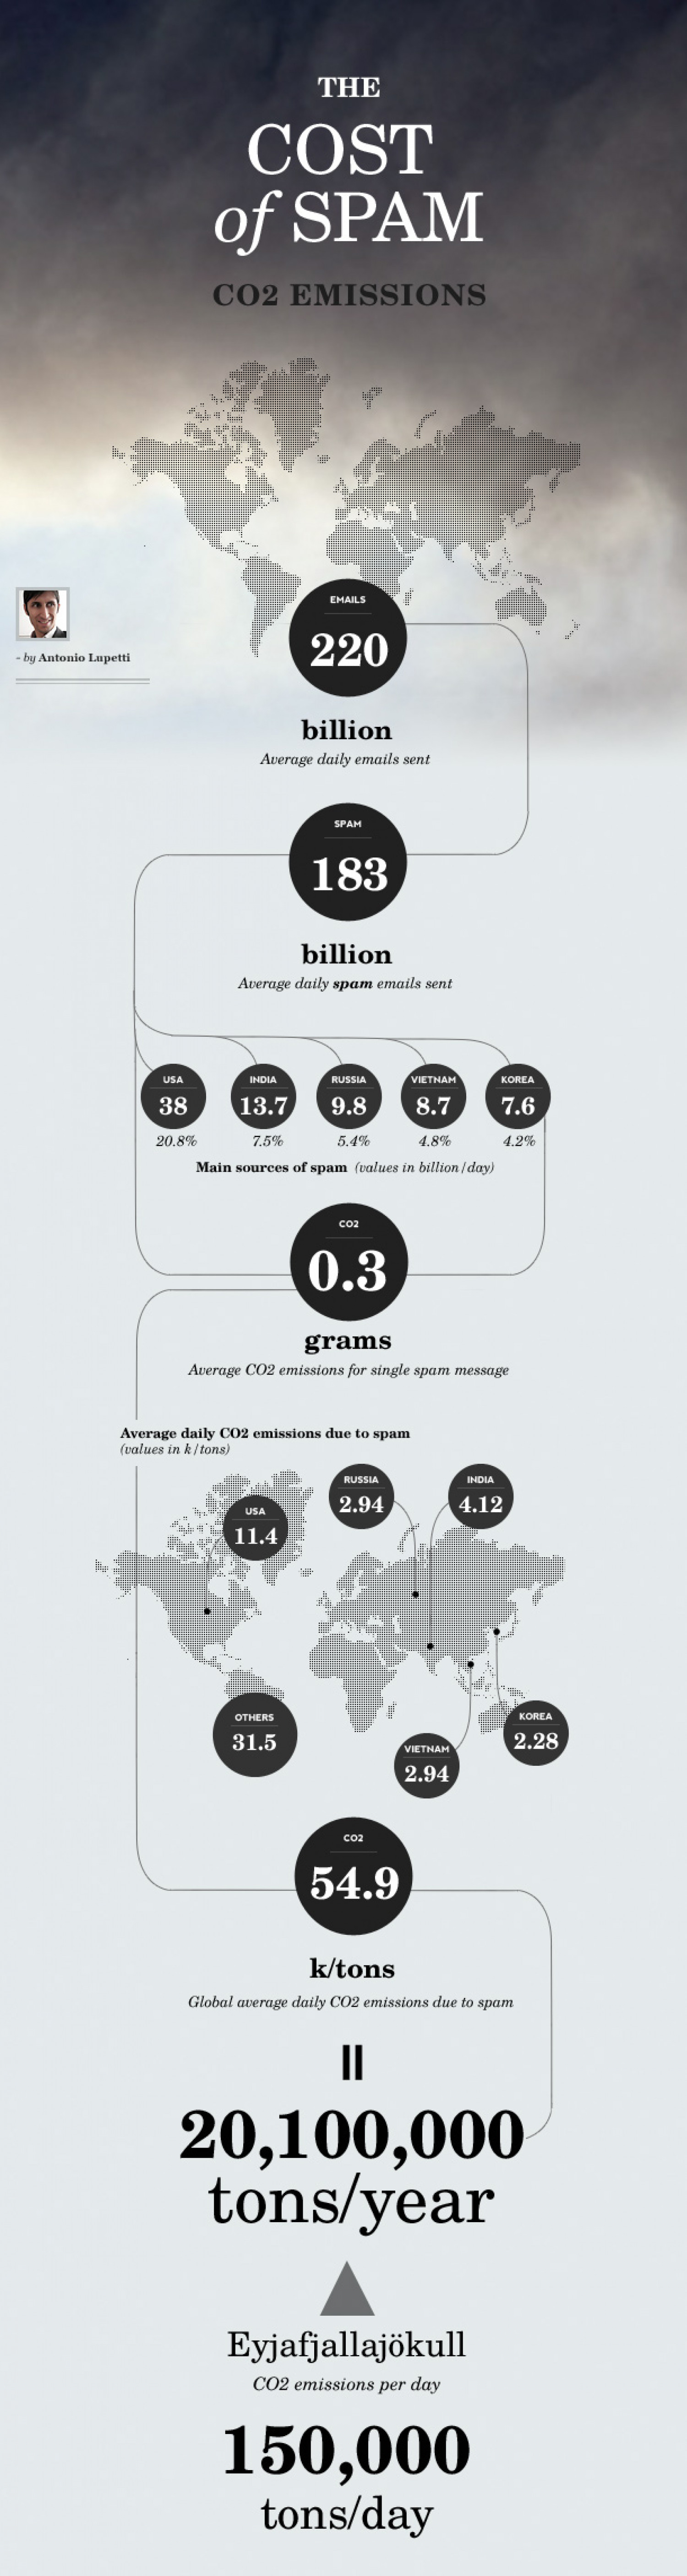 The Cost of Spam: CO2 Emissions Infographic